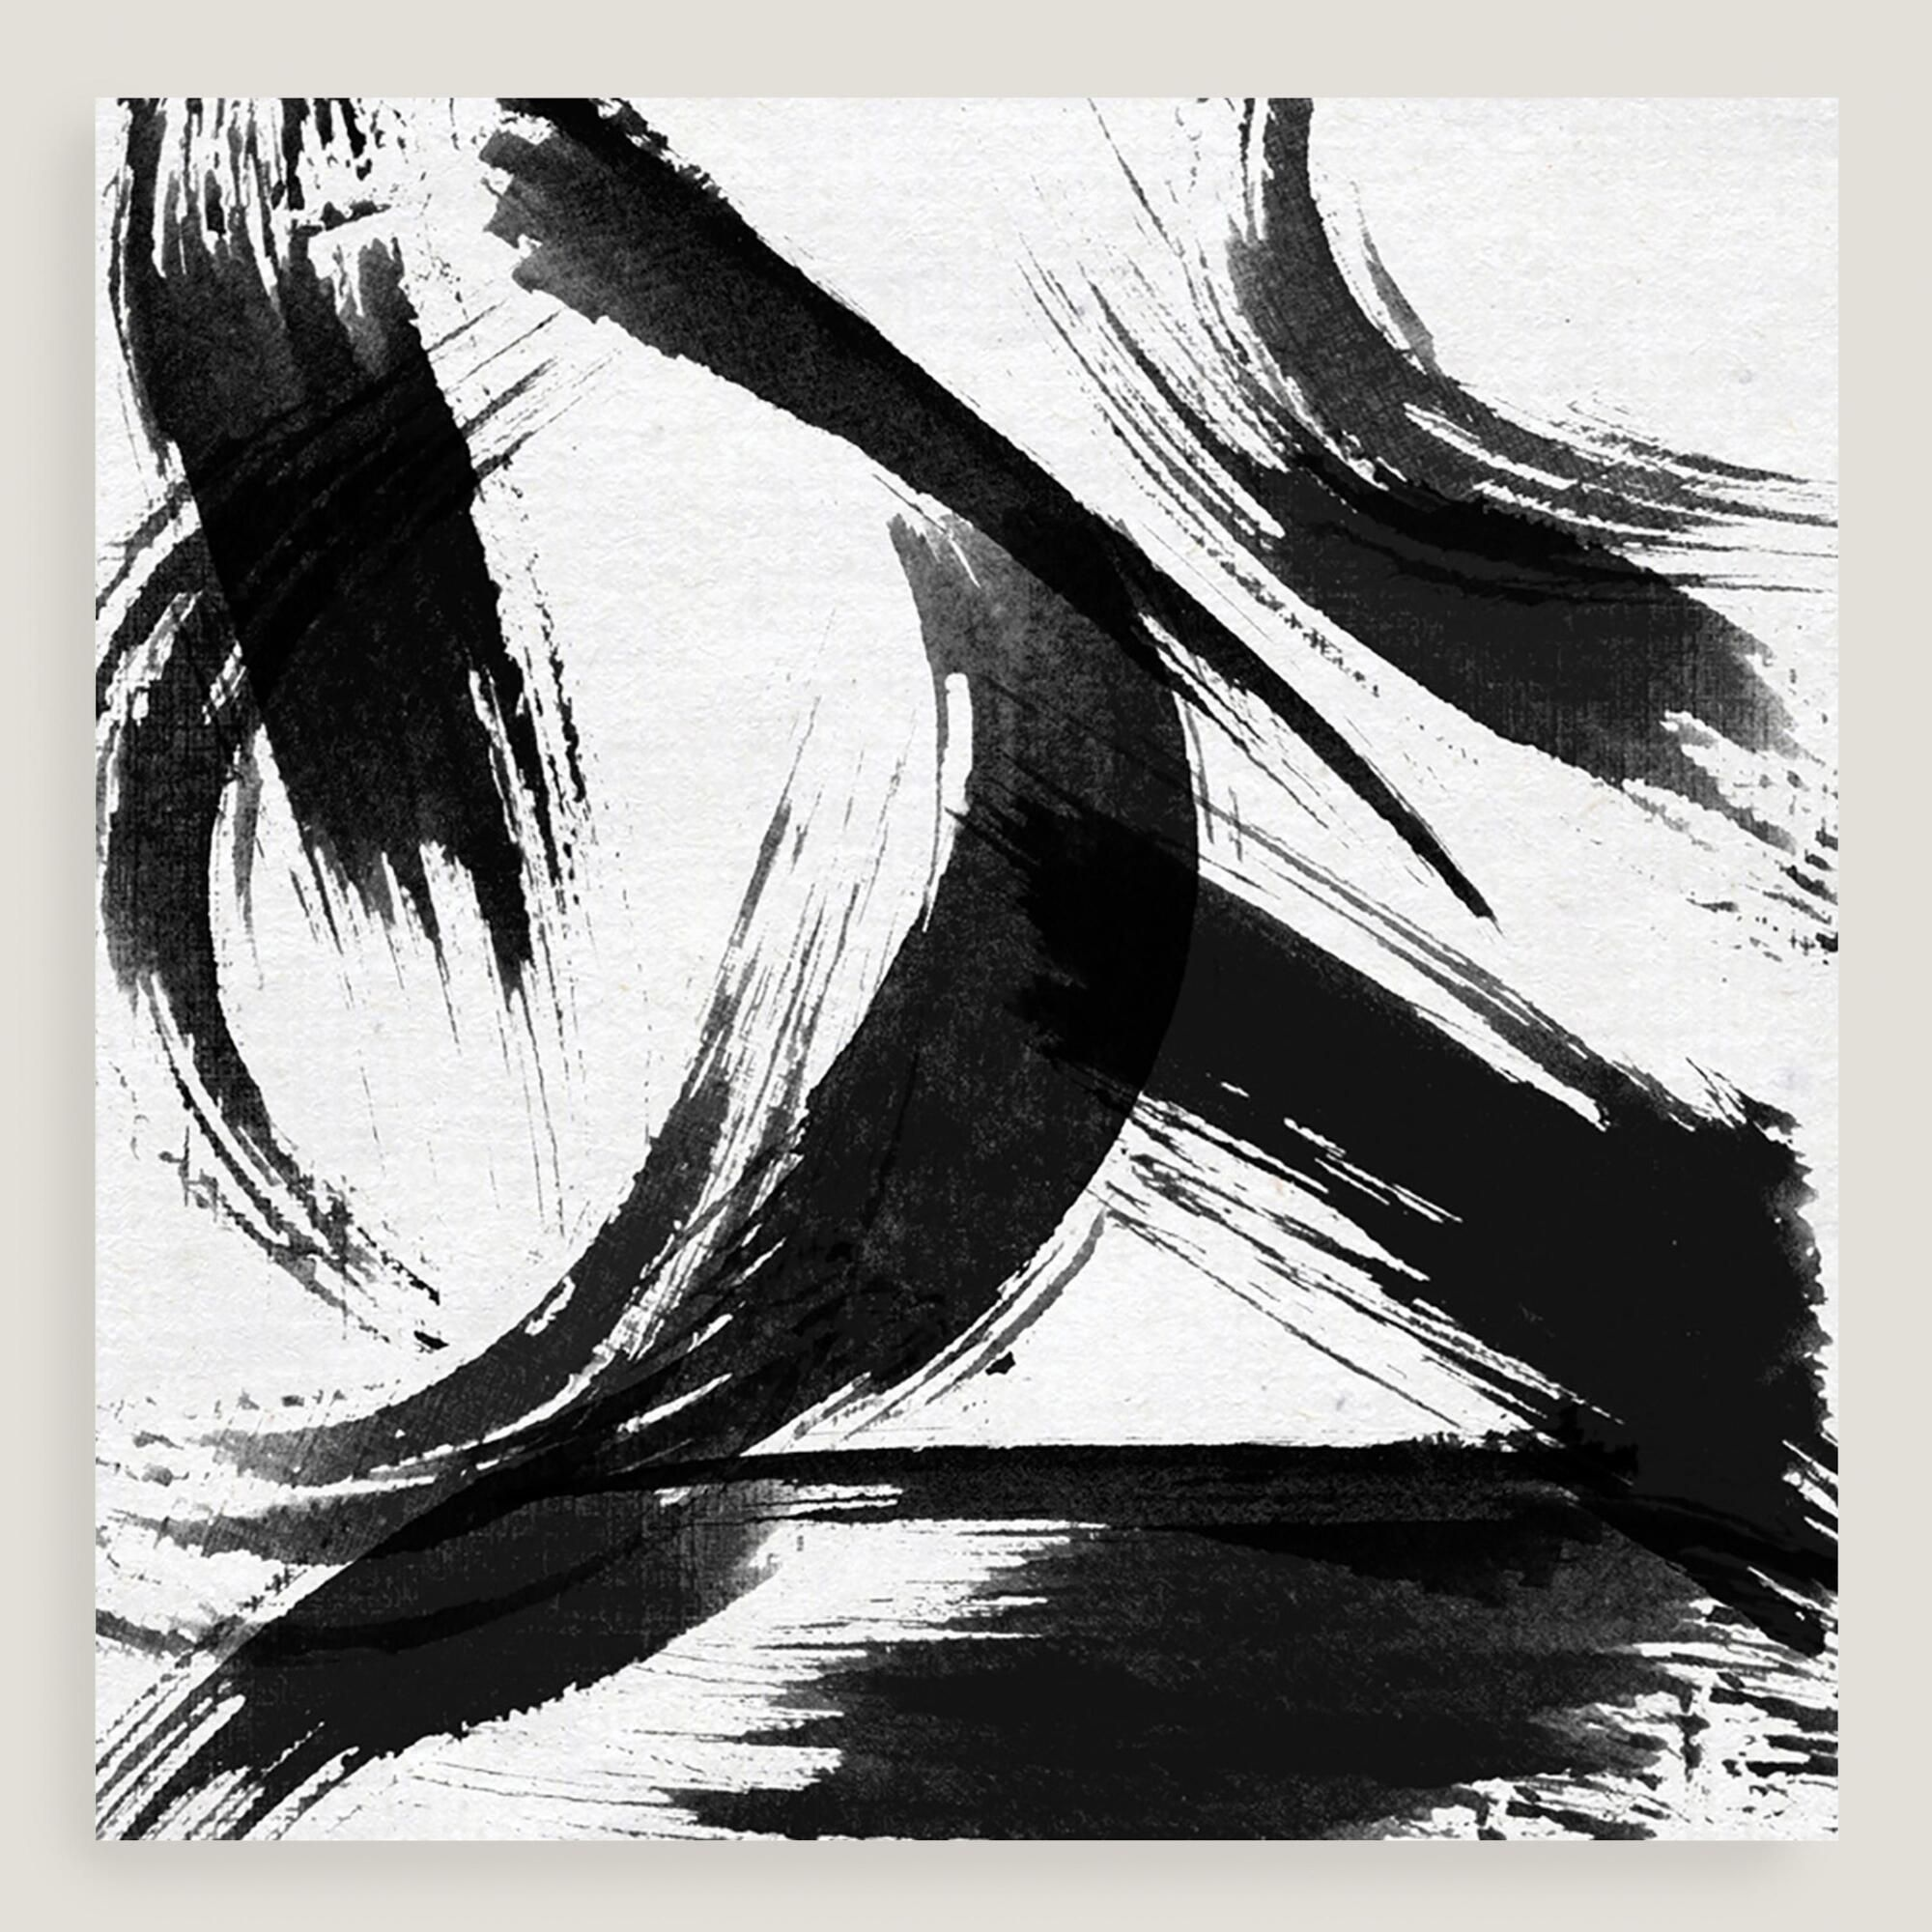 Black and White Abstract Canvas Wall Art by World Market is part of Modern Home Accents Wall Art - Wall Art Chic and modern, this piece features huge brushstrokes in black on a white stretched canvas  Hang it on any bare wall to create a stylish statement in an instant  Material , ColorBlack  Also could be used forCanvas,Wall art,Home décor,ocean picture,poster,love,heart,abstract  By Cost Plus World Market 10013247